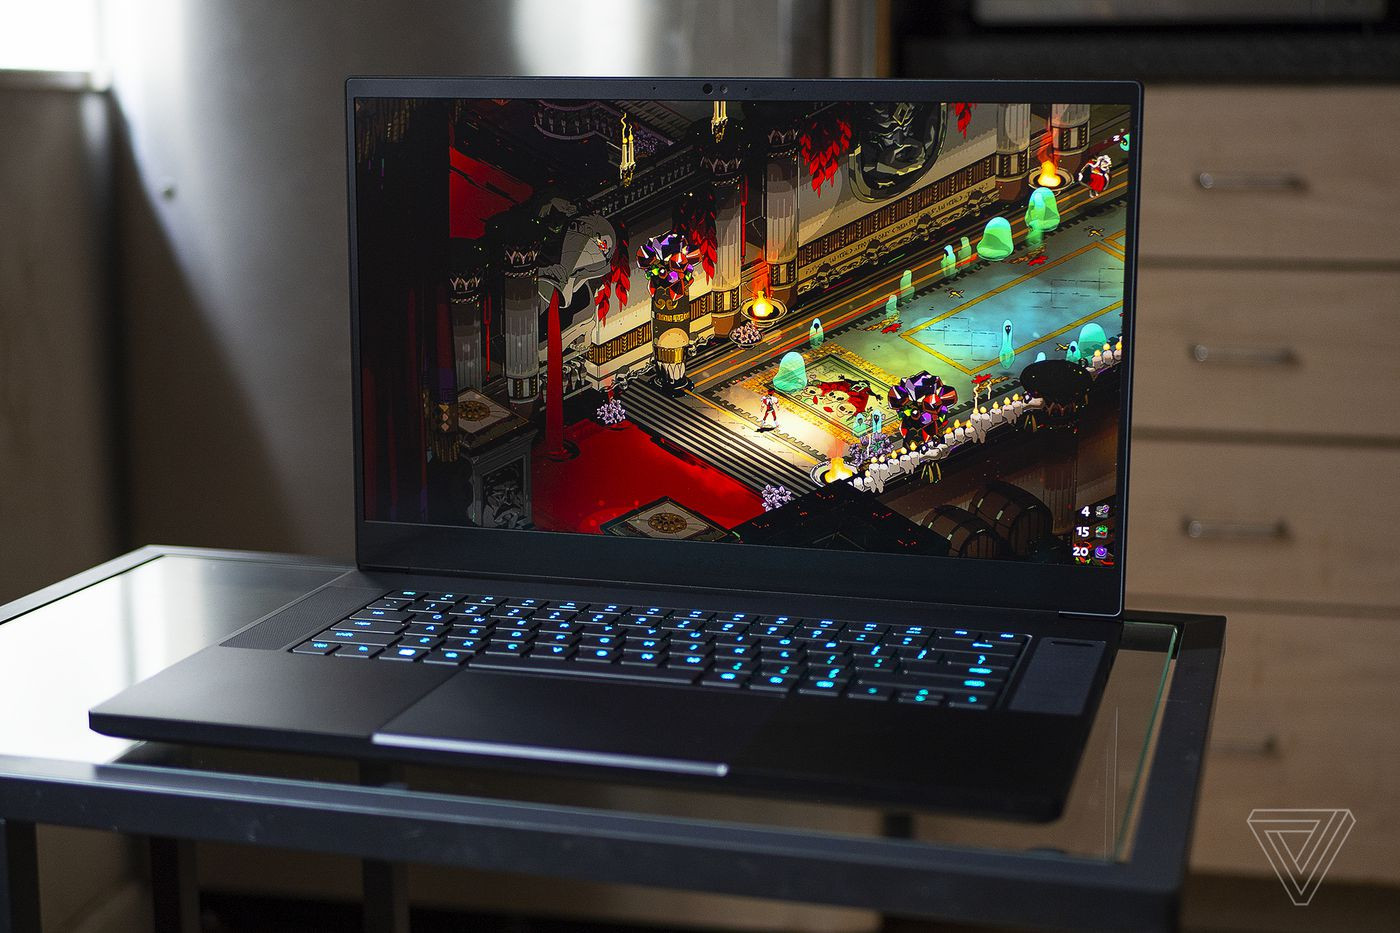 Best Laptop for Console Streaming